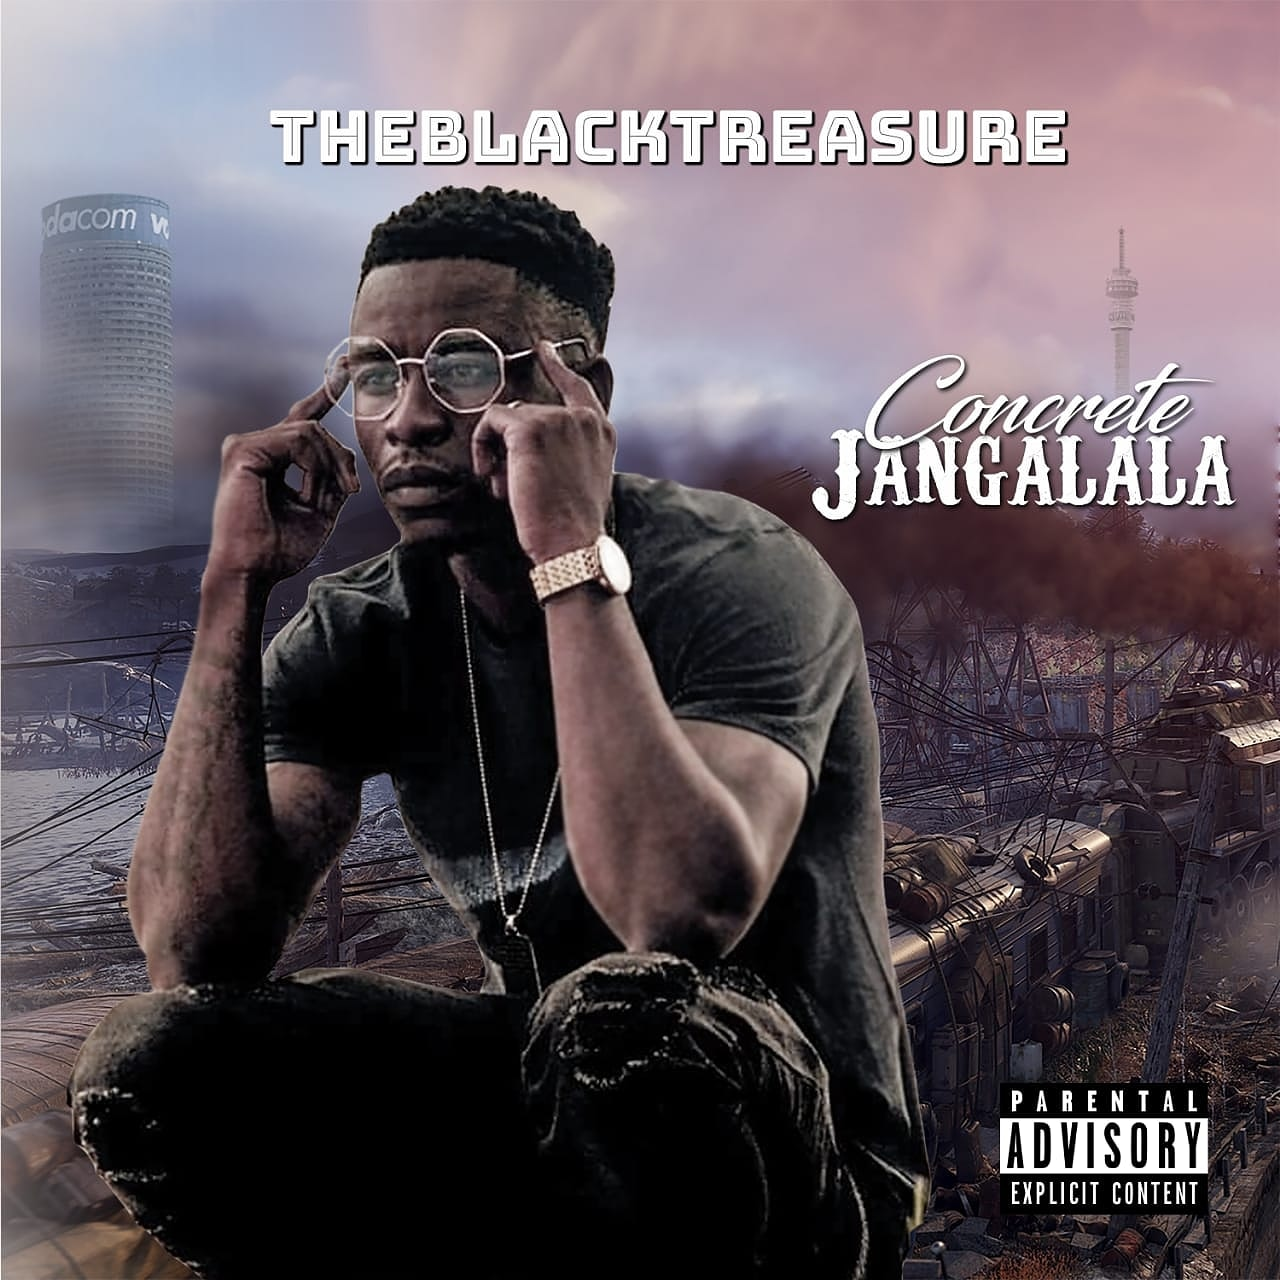 theblacktreasure Listen To TheBlackTreasure's Latest 'Concrete Jangalala' EP IMG 20190223 171511 321